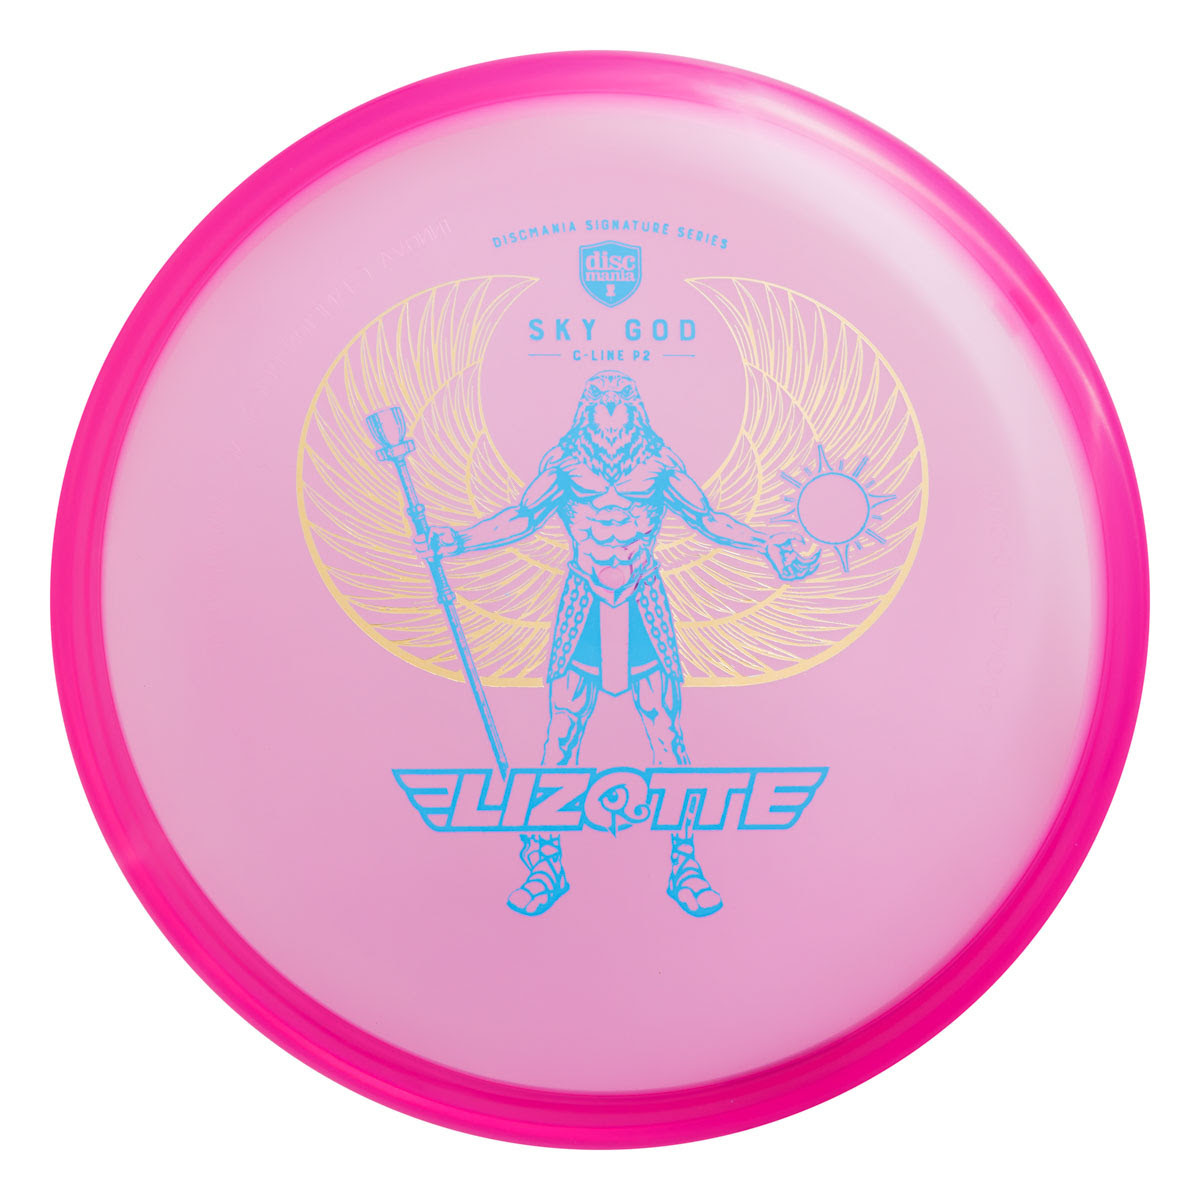 "Discmania Limited Edition Double Stamp "" Golden Wings Sky God"" C-Line P2"